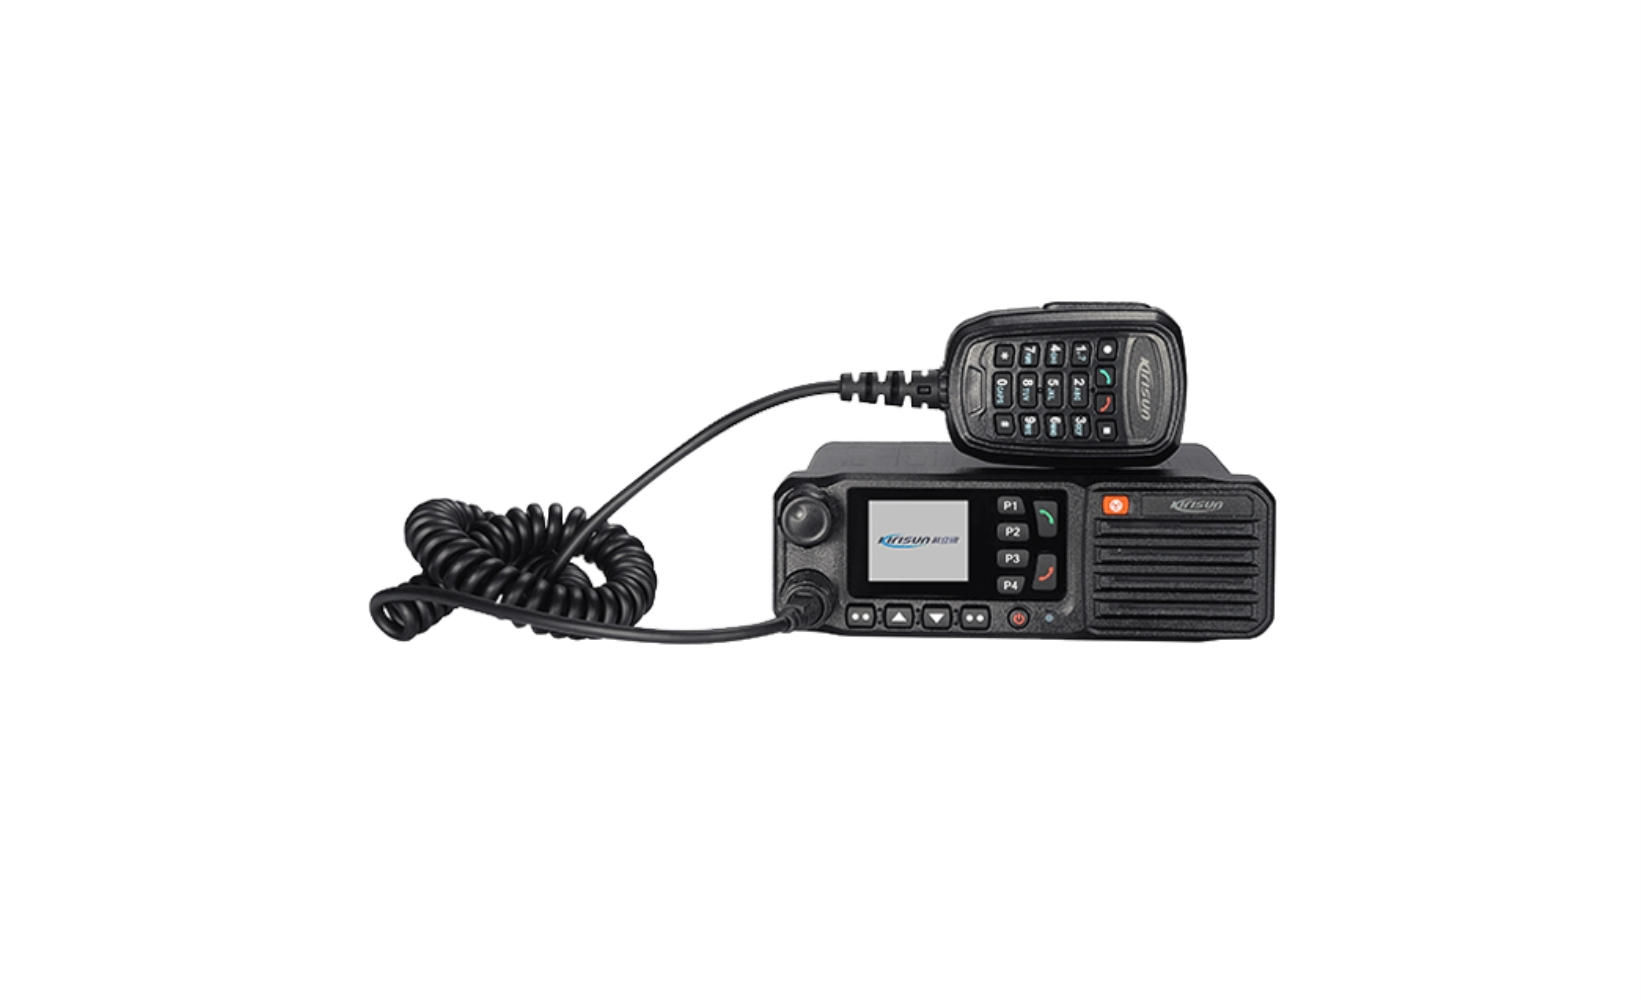 photo of Kirisun TM-840-UHF-25 - 1024 Channel, 25 Watt, UHF Mobile Radio